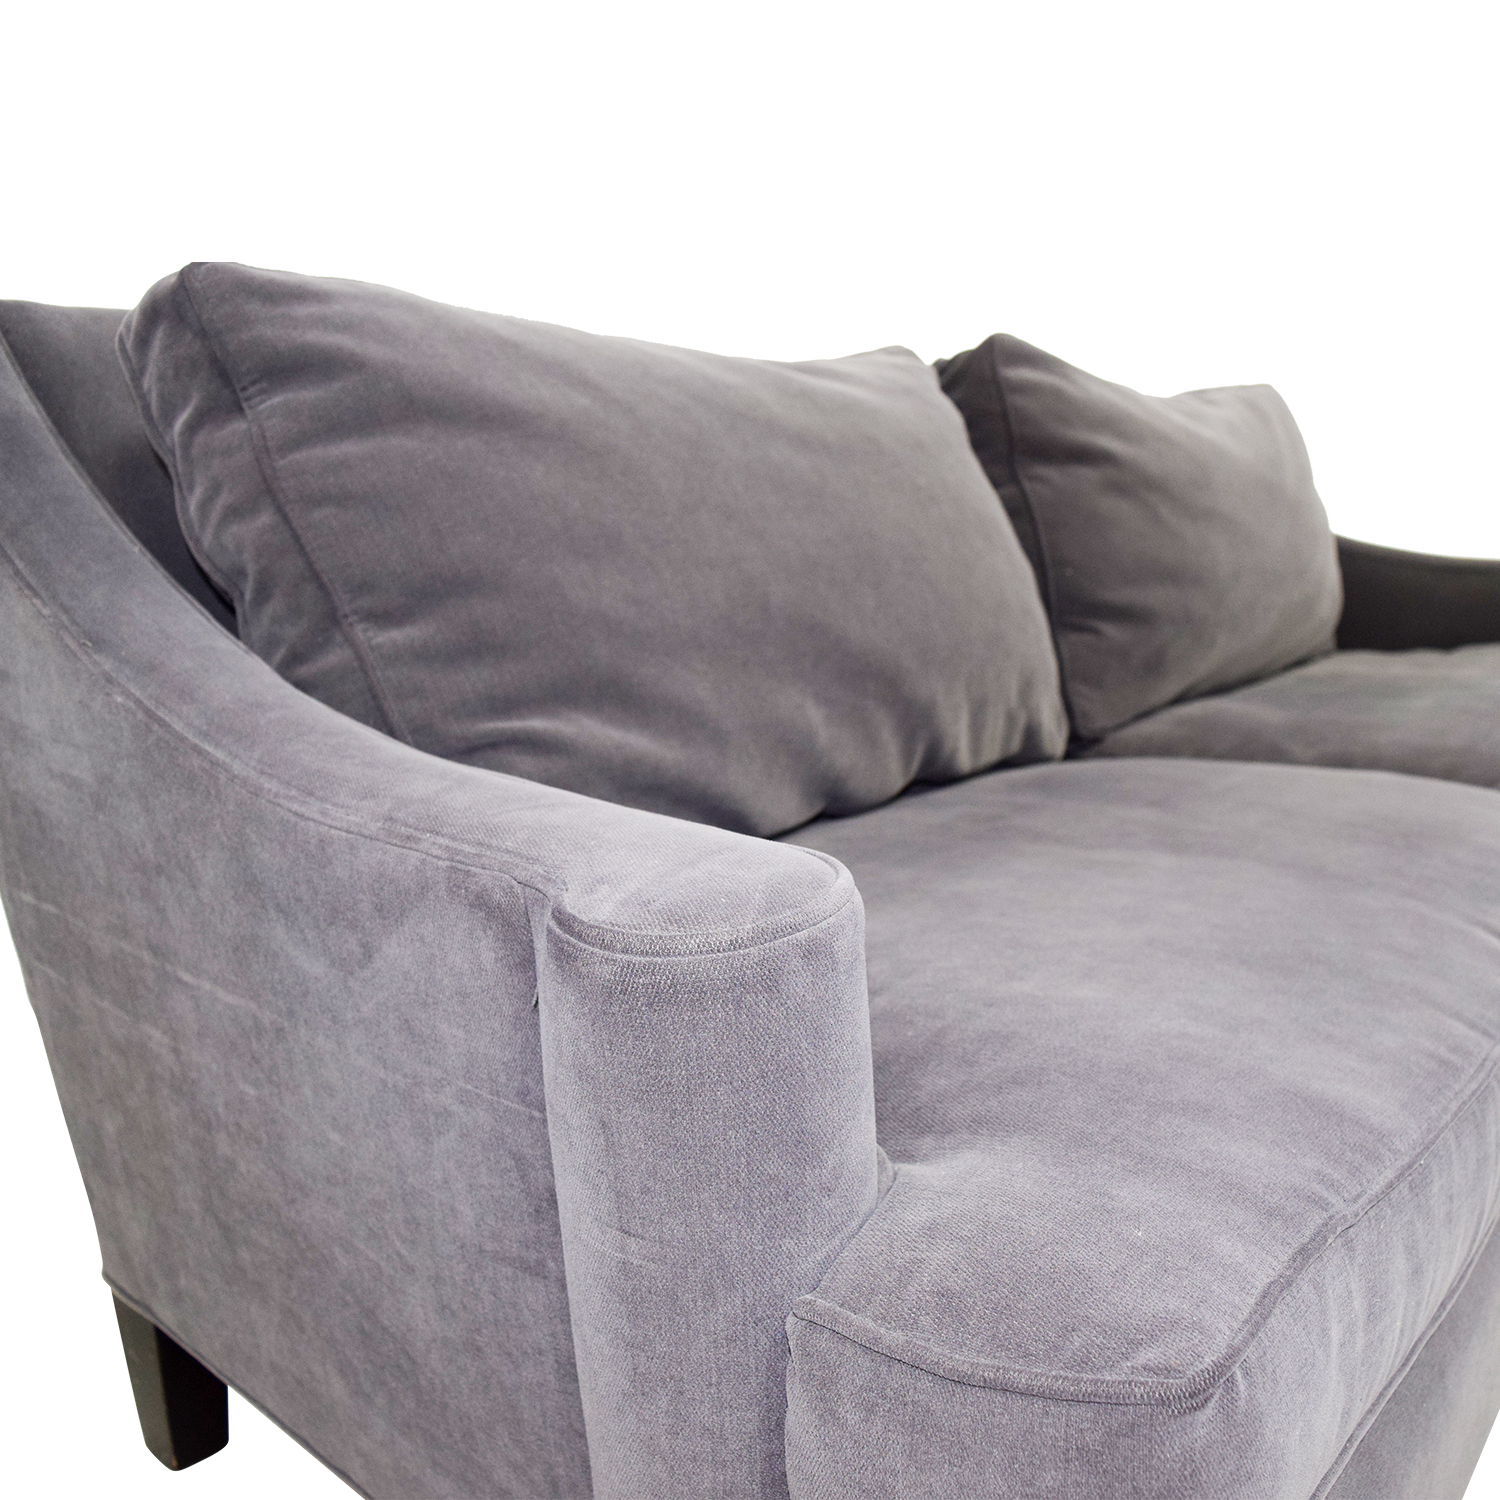 ABC Carpet & Home ABC Carpet & Home Grey Loveseat price